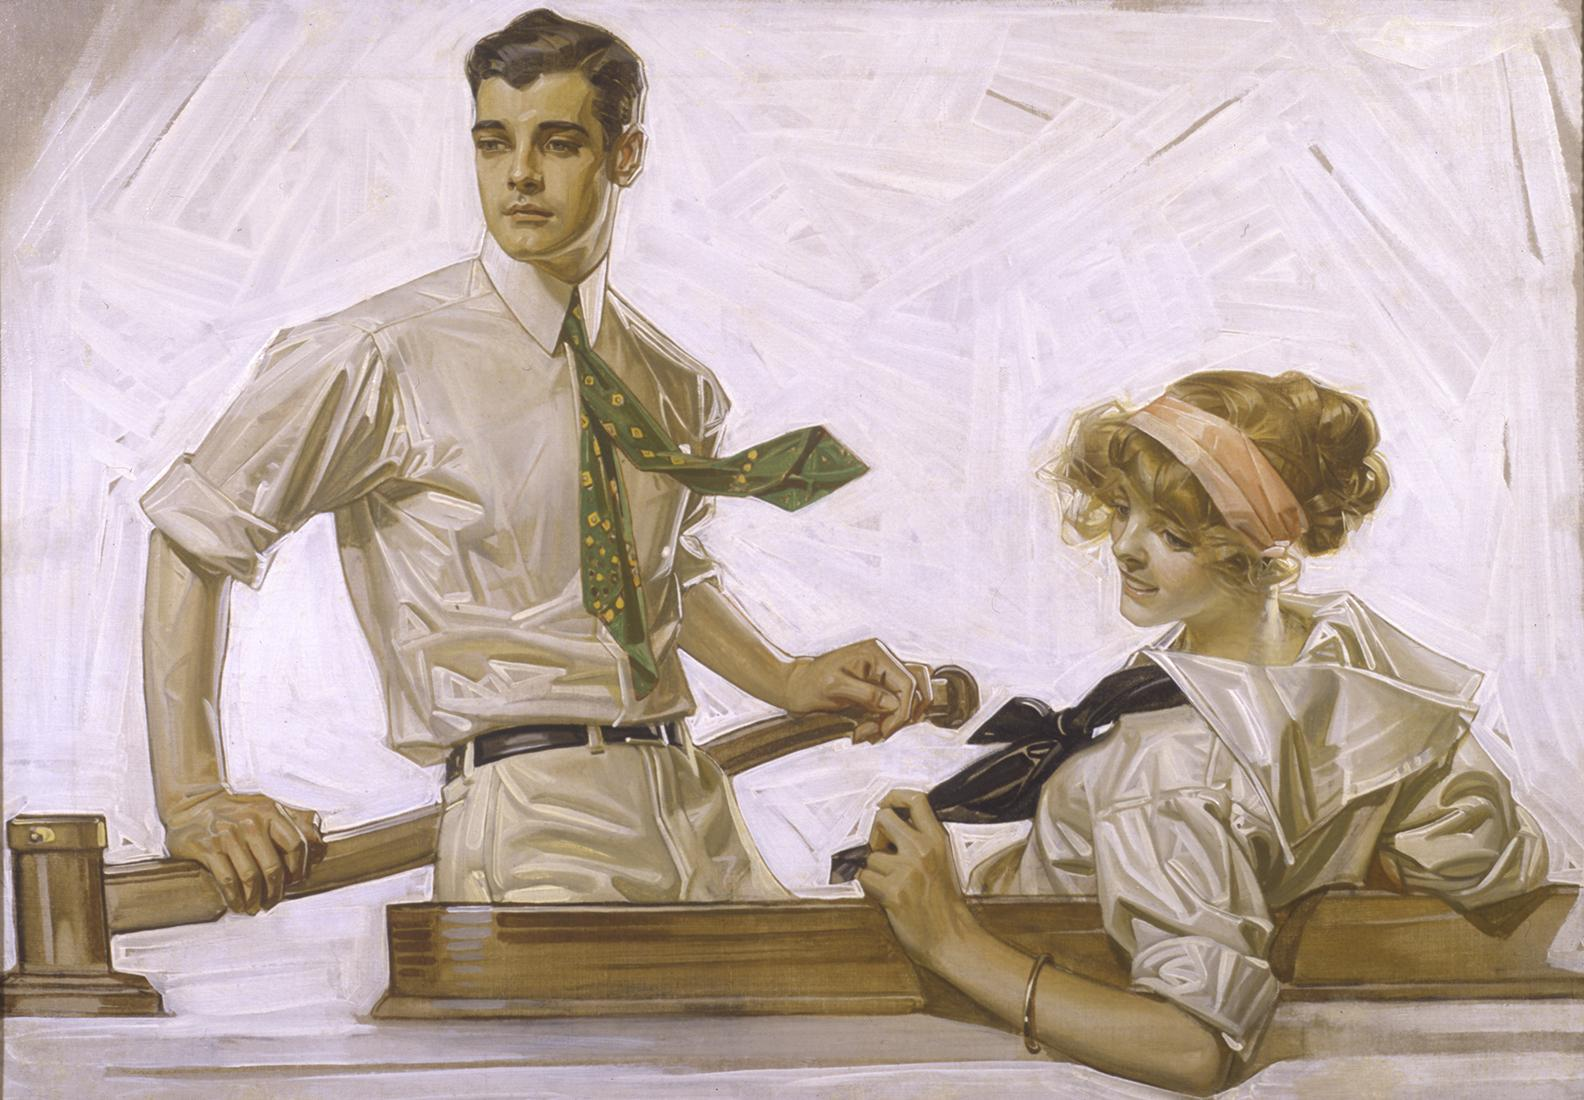 Leyendecker and the Golden Age of American Illustration